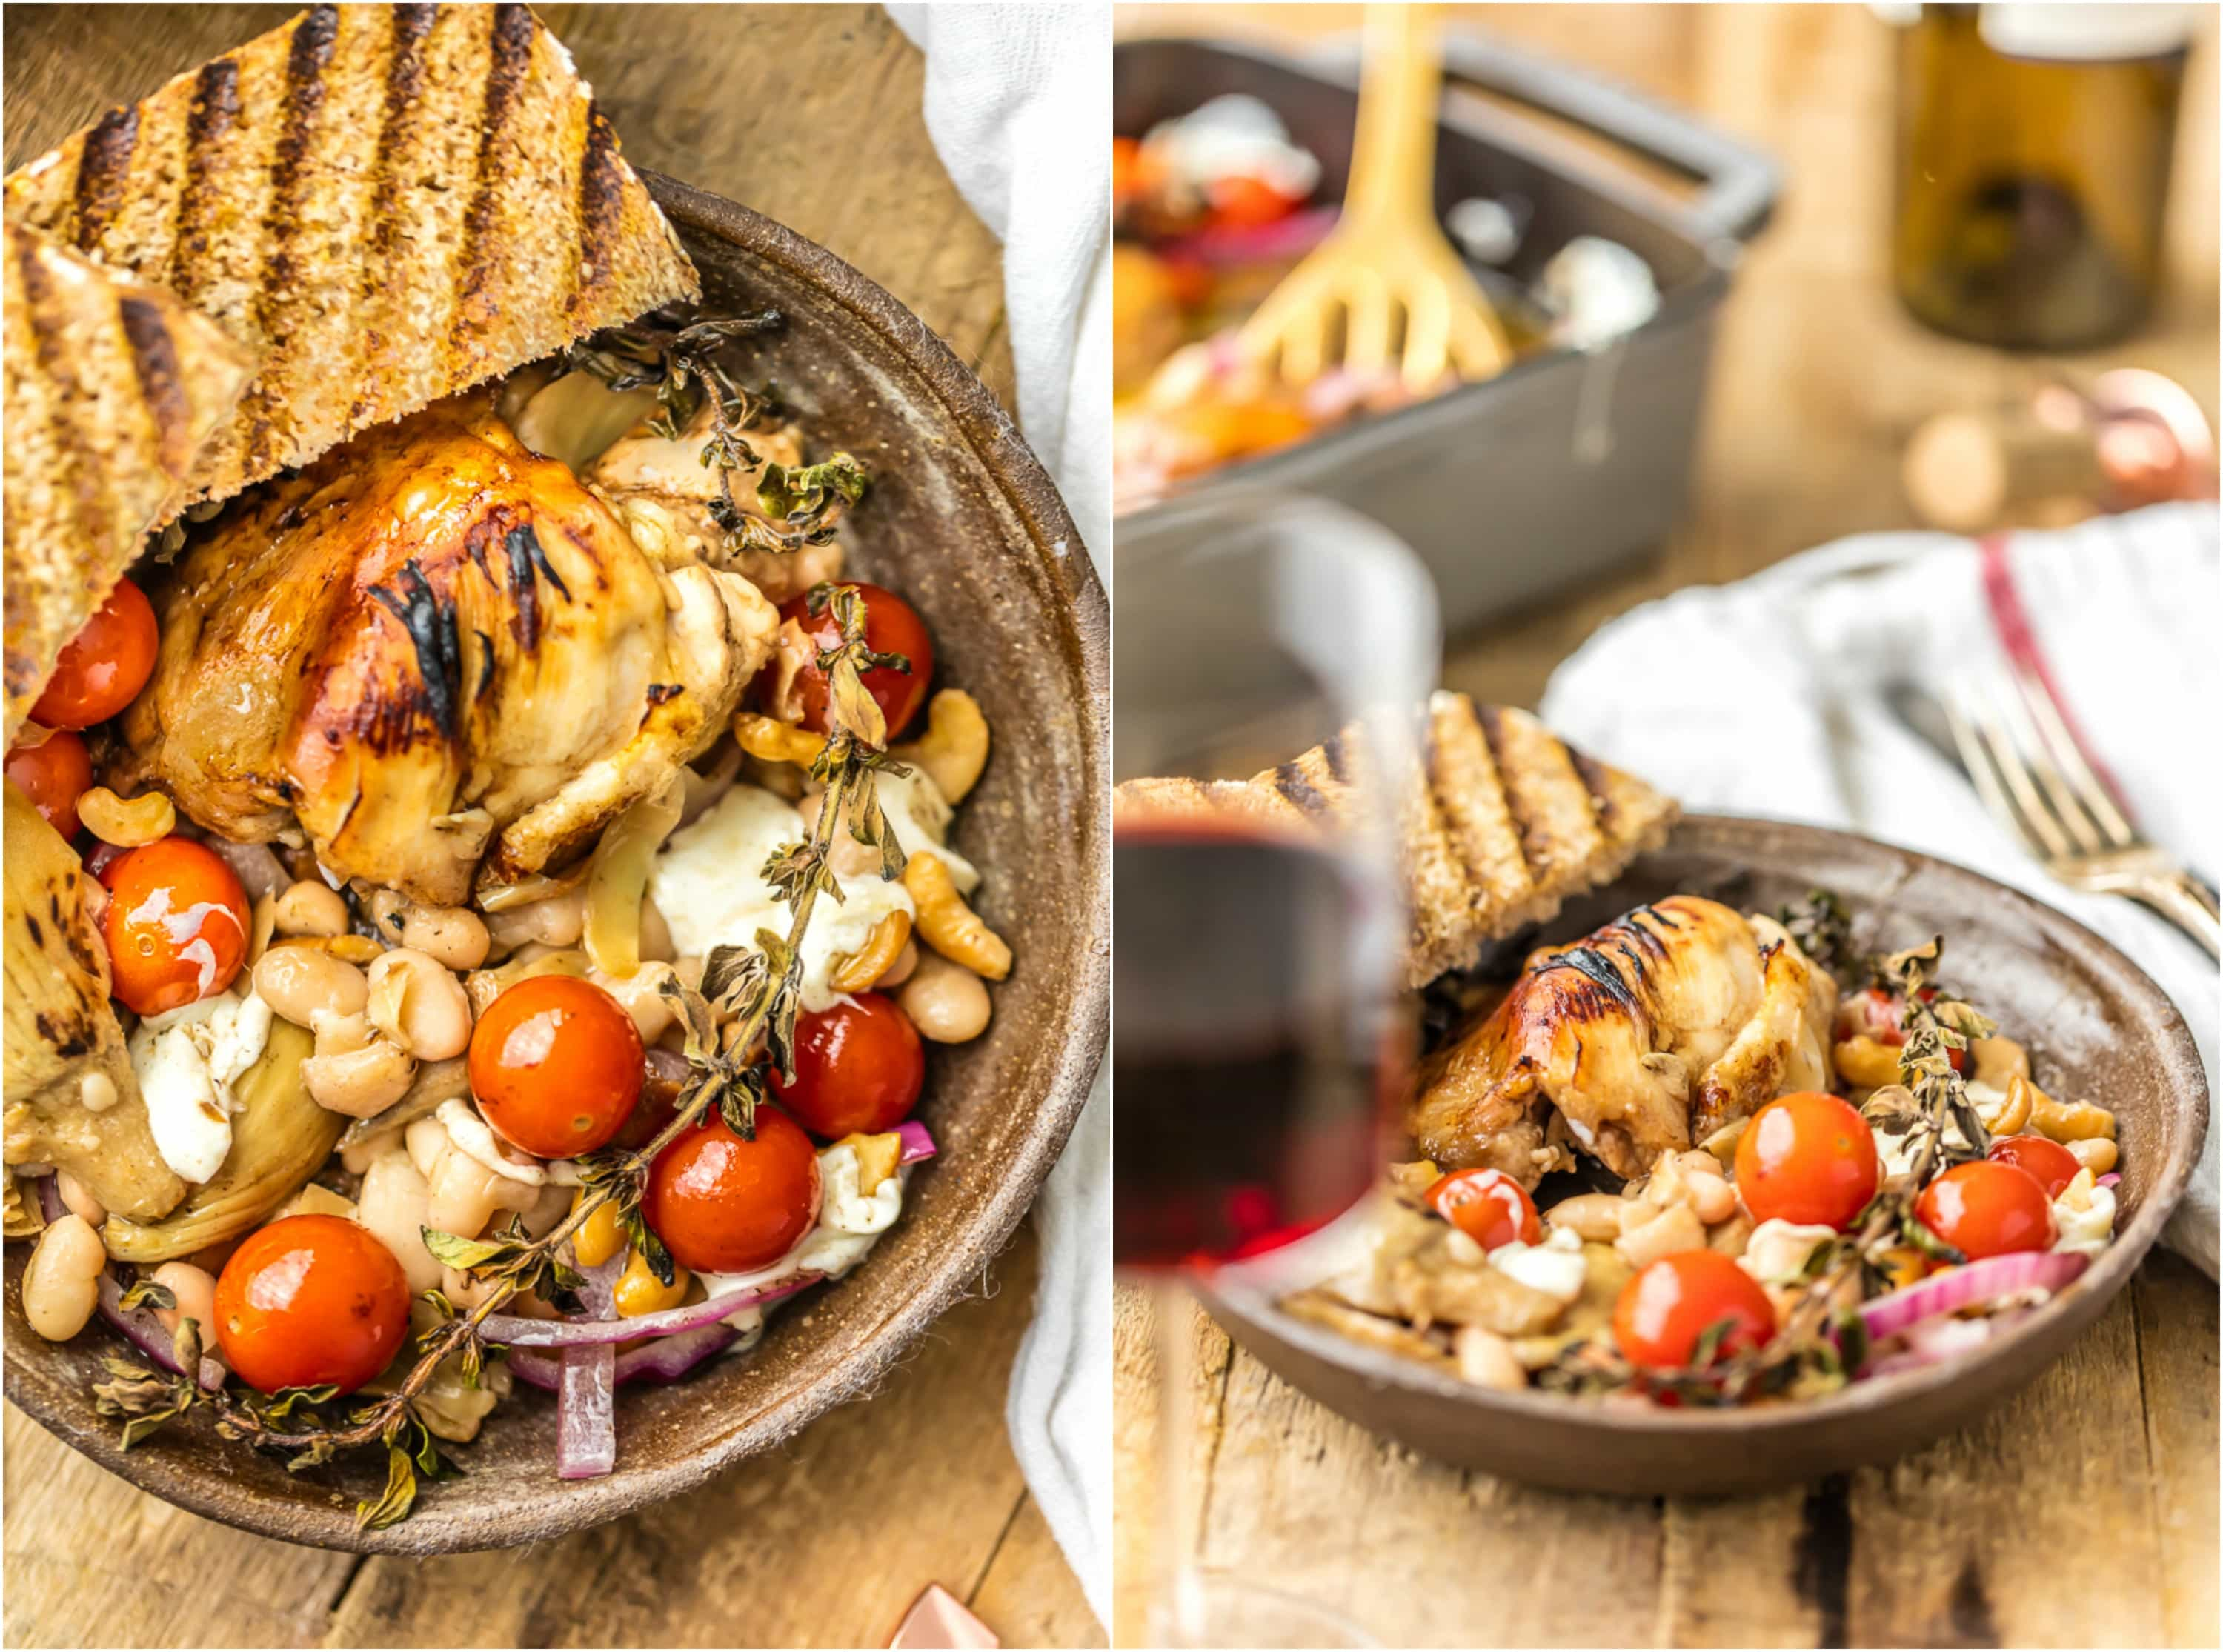 balsamic glazed Mediterranean baked chicken on a plate with grilled garlic toast